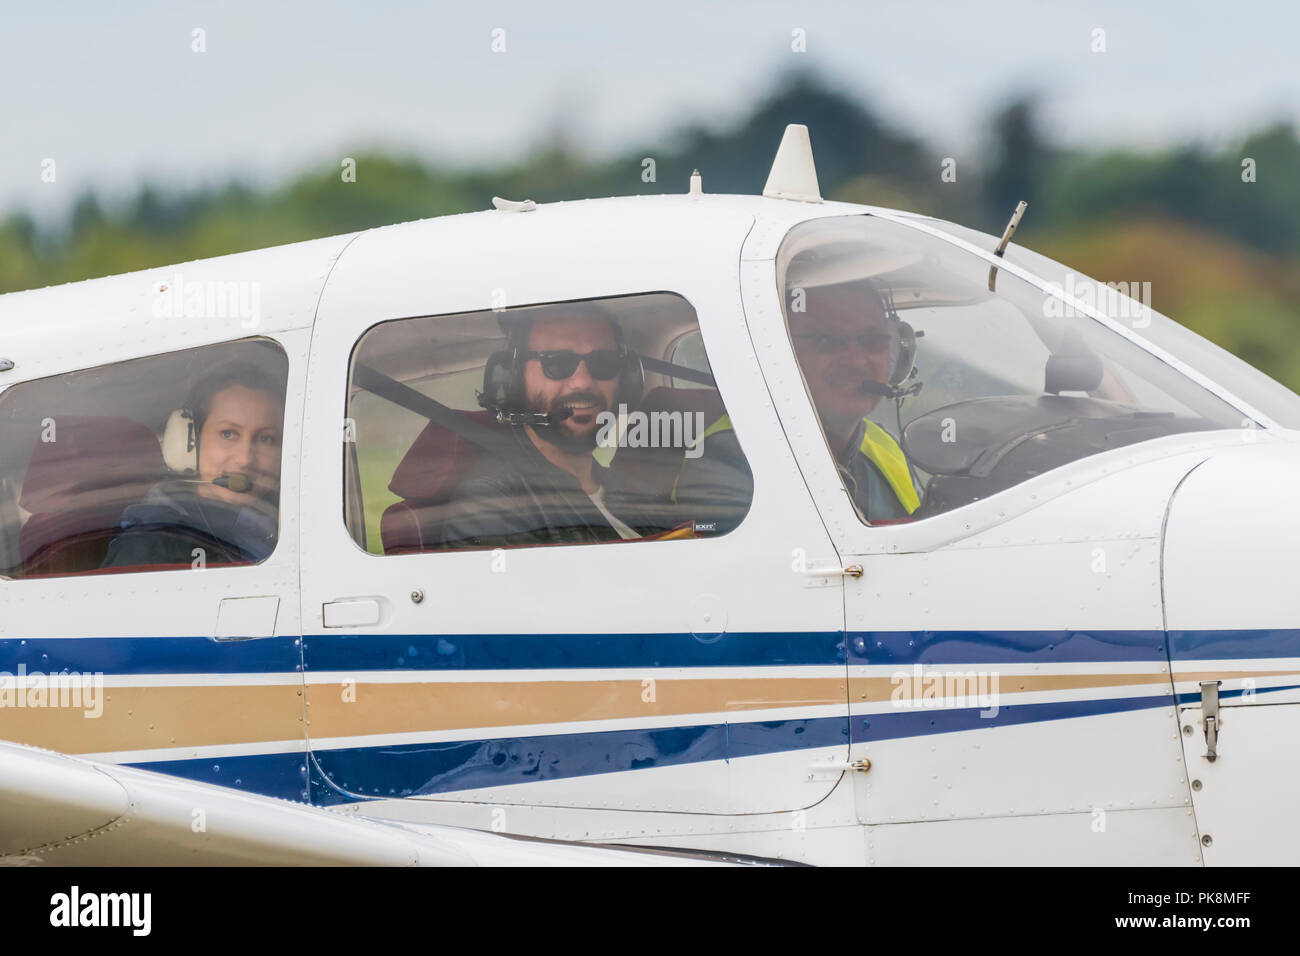 Small group of people sitting in a single engine private aircraft looking out the window smiling, ready to take off, in the UK. Private pilot. - Stock Image